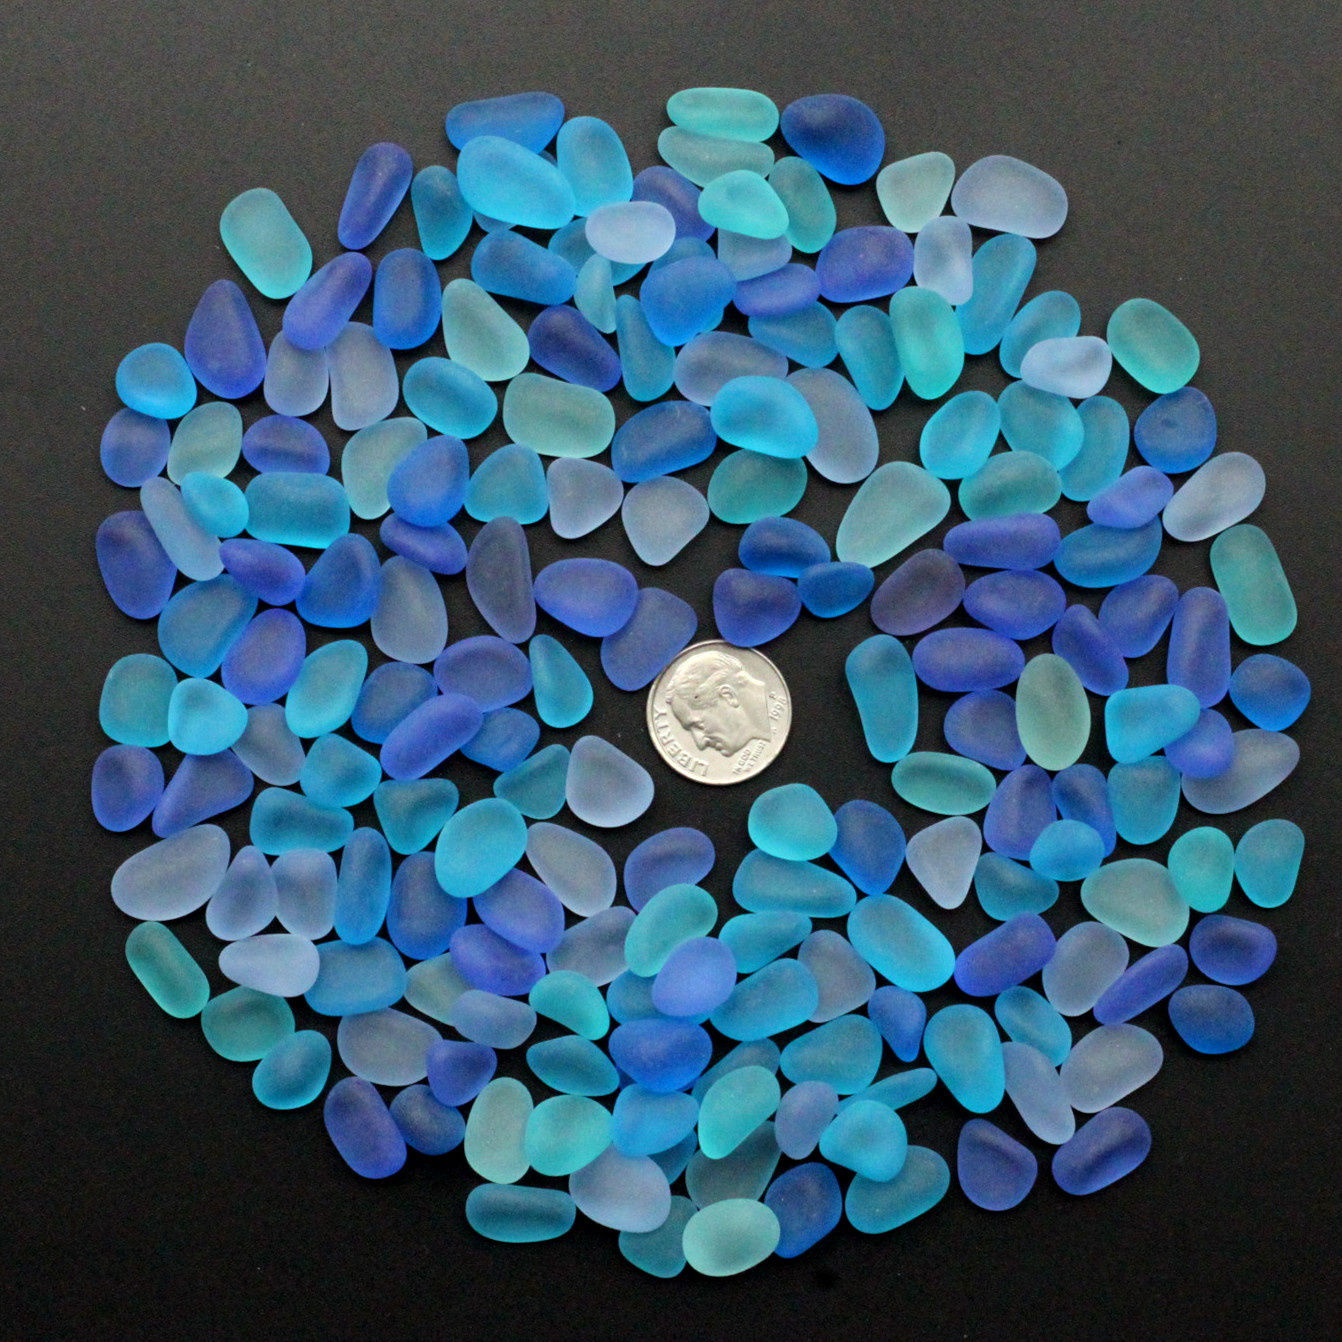 20Pcs Sea Beach Glass Beads Jewelry Vase Aquarium Fish Tank Decorations Craft 10-16mm